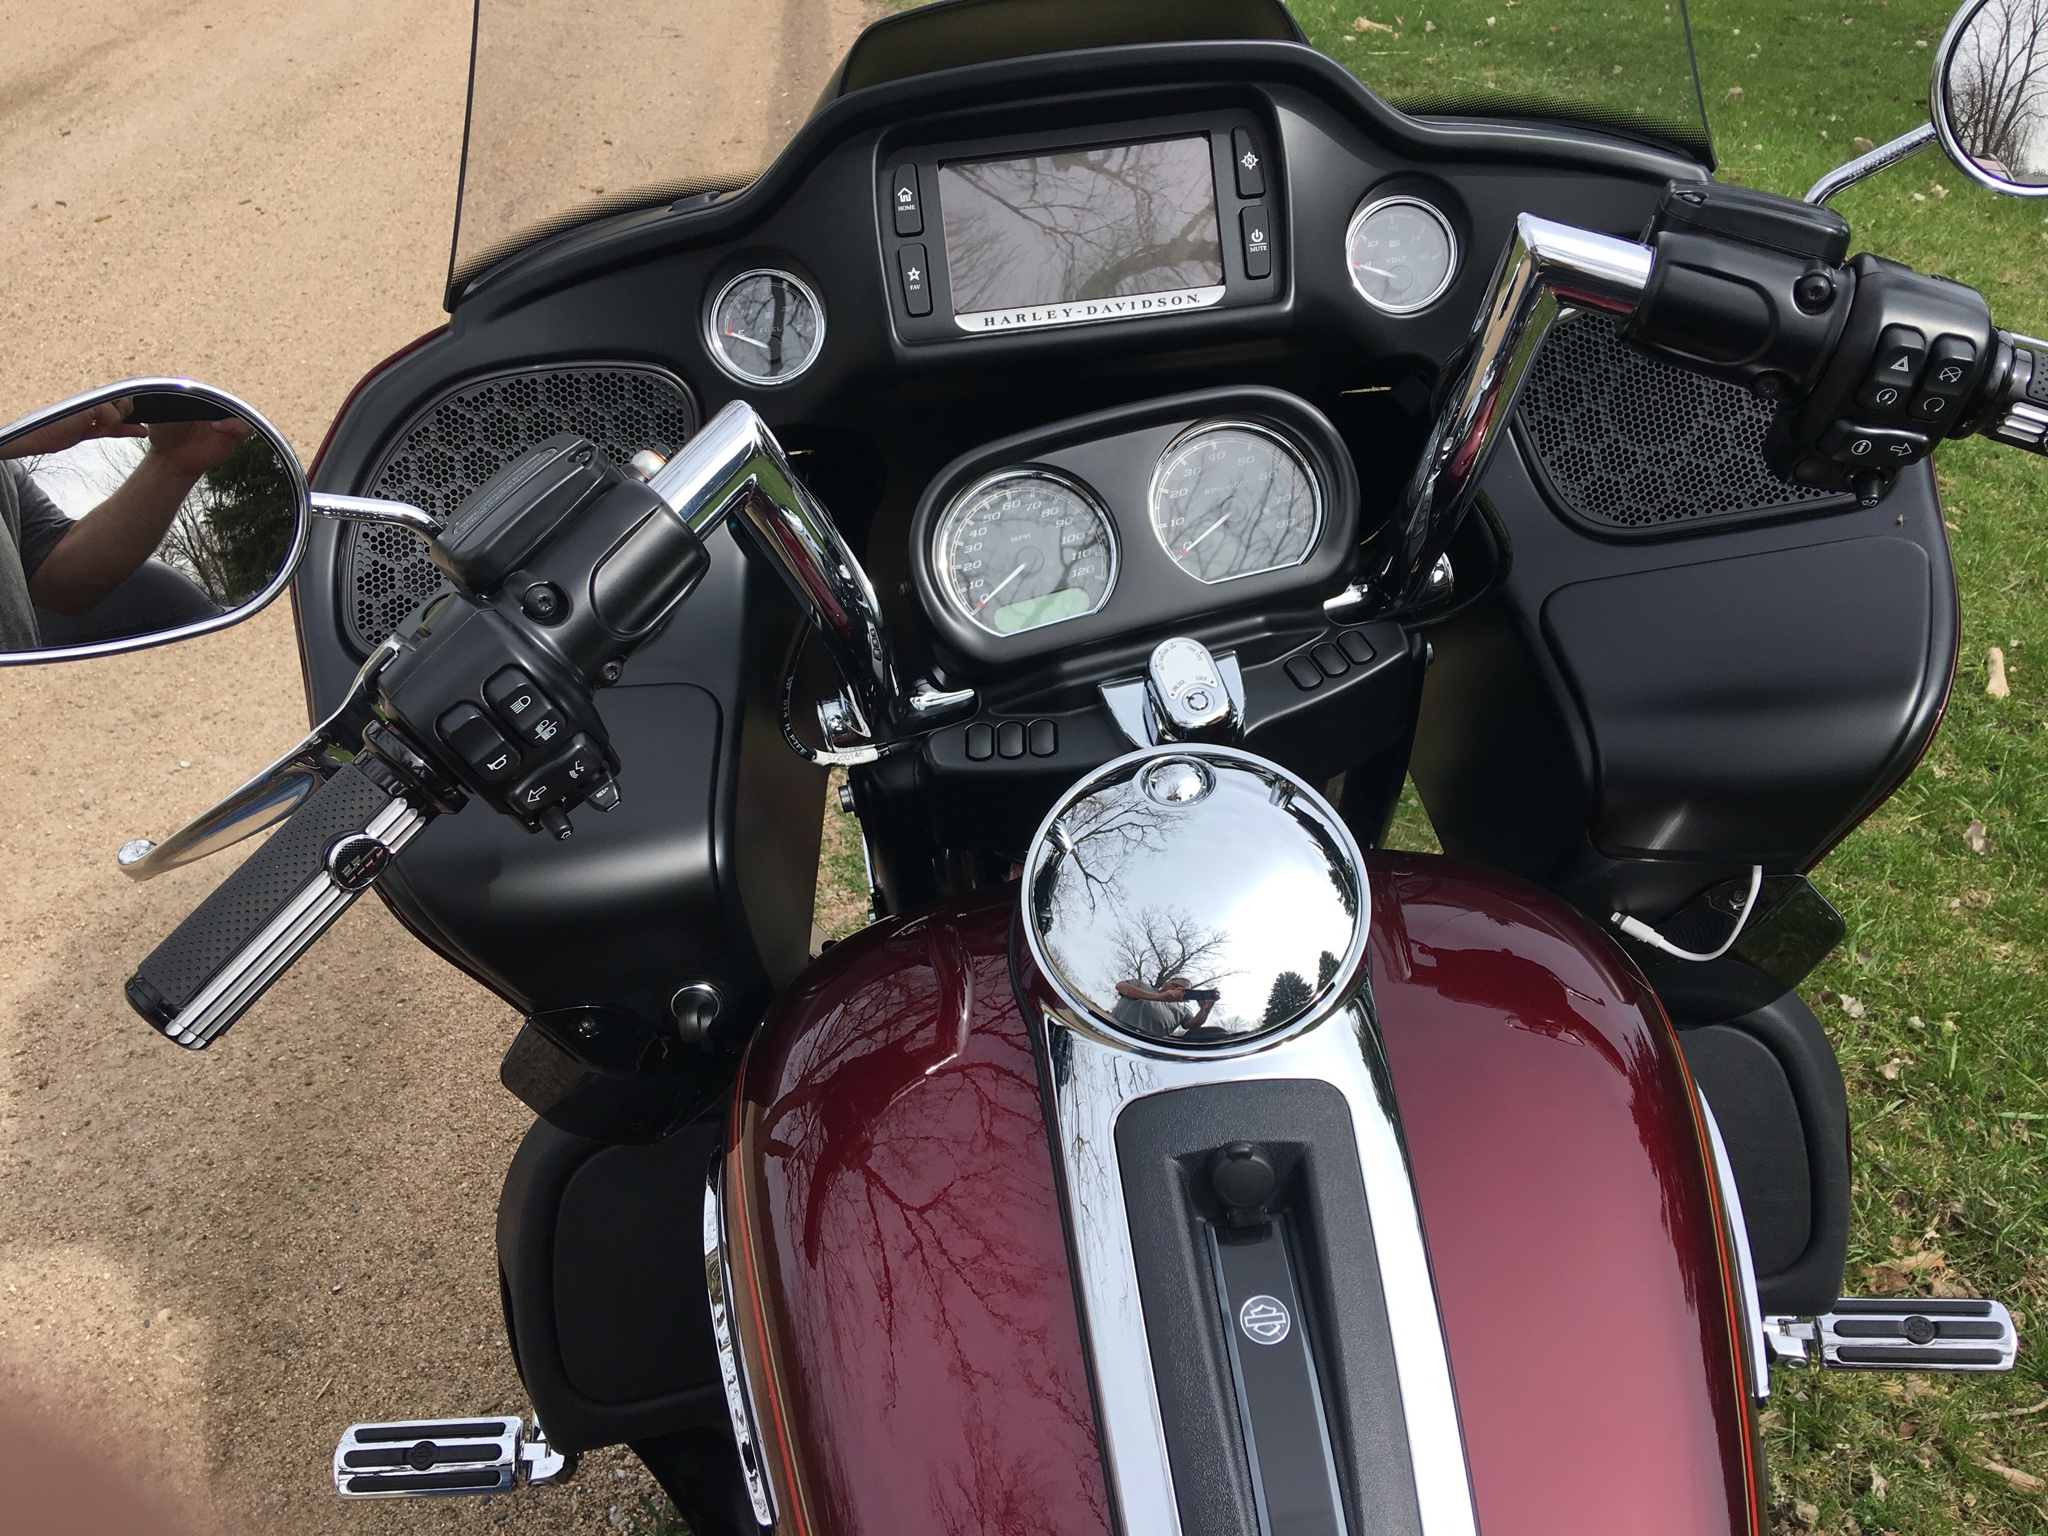 Chizeled LO on RGU???? - Page 2 - Road Glide Forums